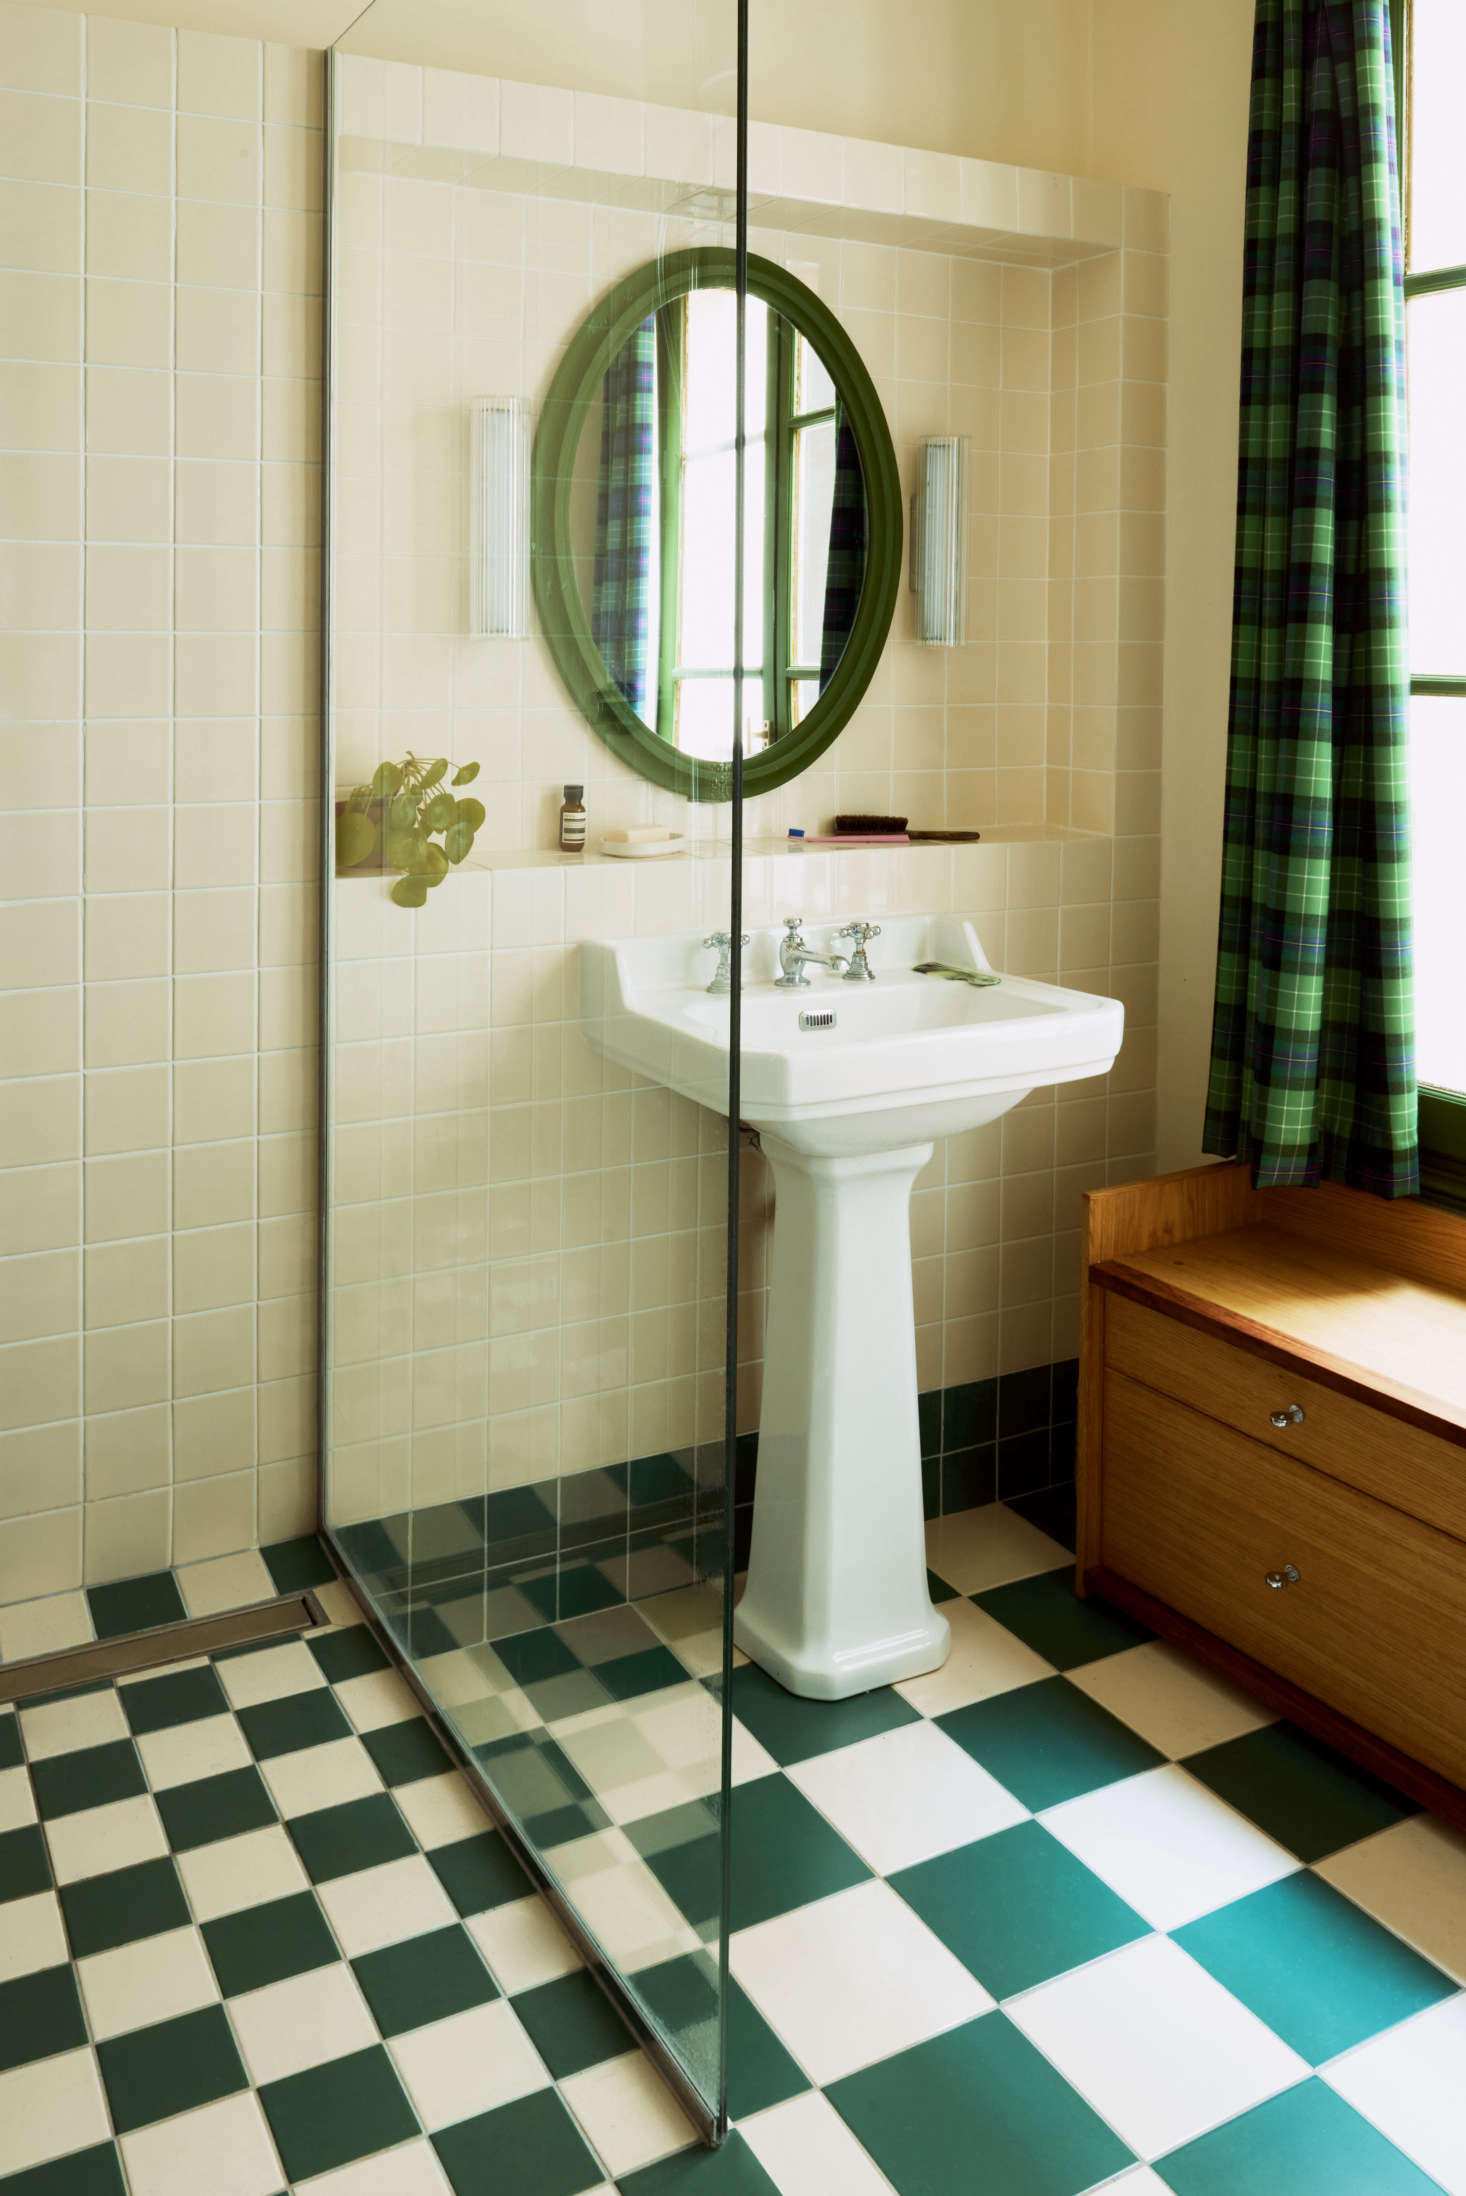 The green theme continues in the bathroom, where the bespoke drawers serve as both storage and a bench.